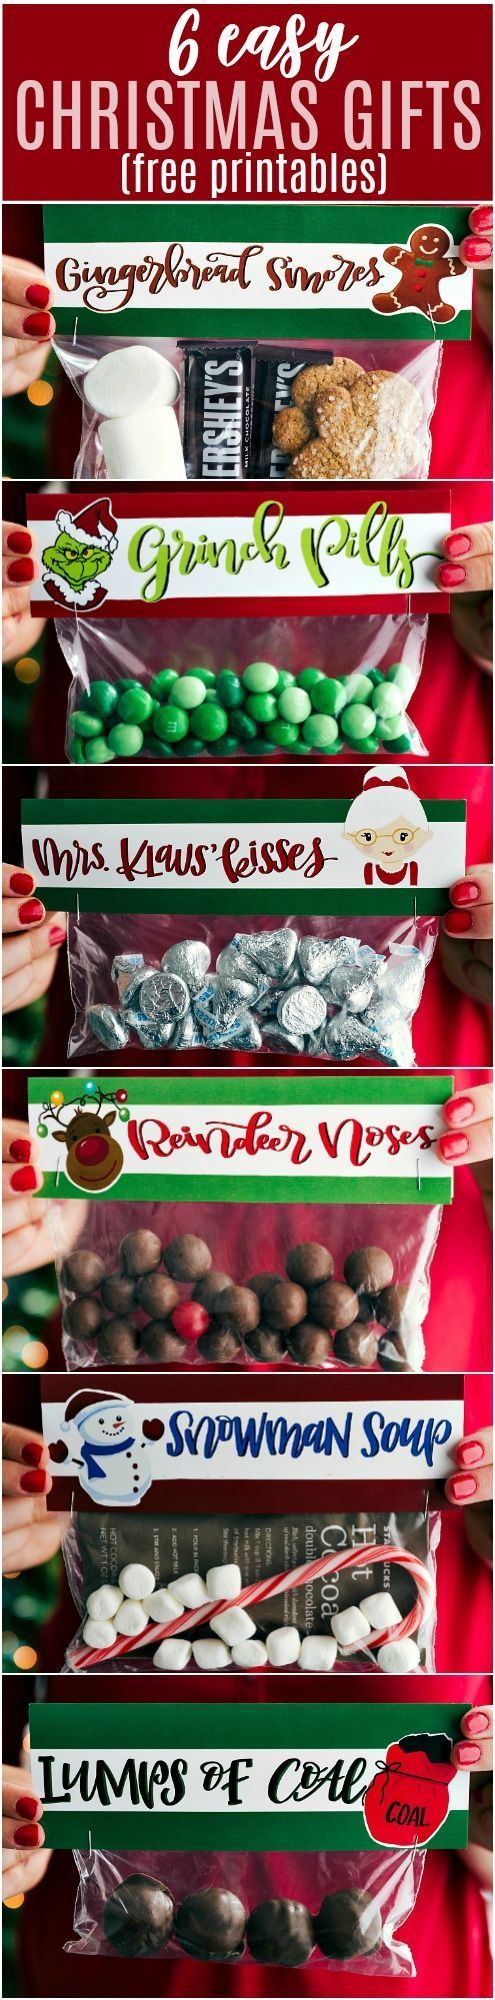 Best 25+ Crafty christmas gifts ideas on Pinterest | Christmas ...